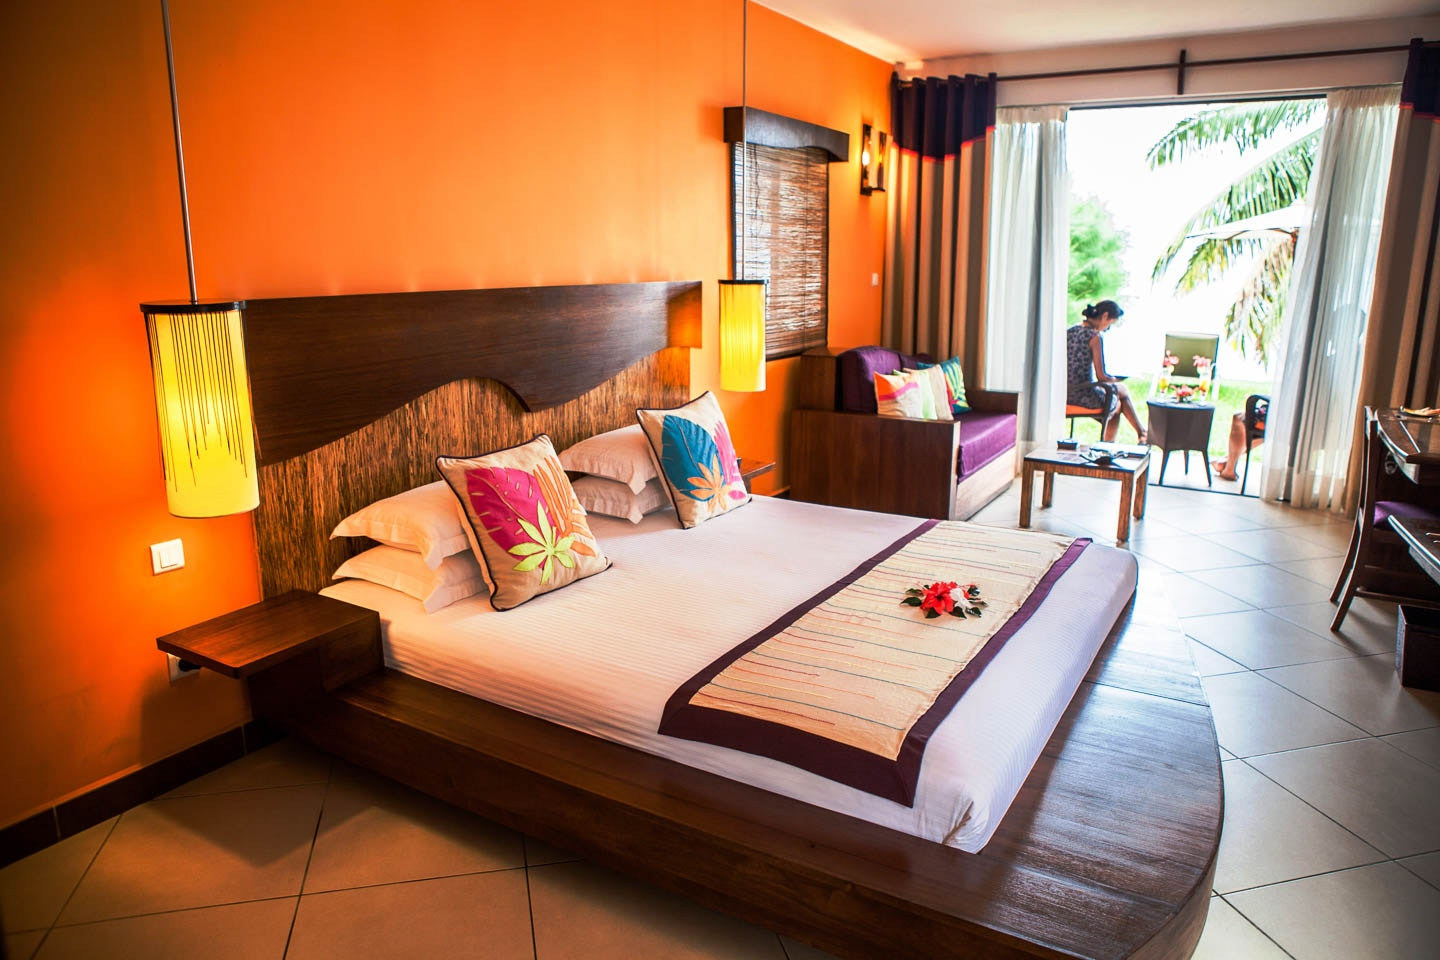 A World Class Hotel In A Tropical Setting, With All The Luxuries You Desire